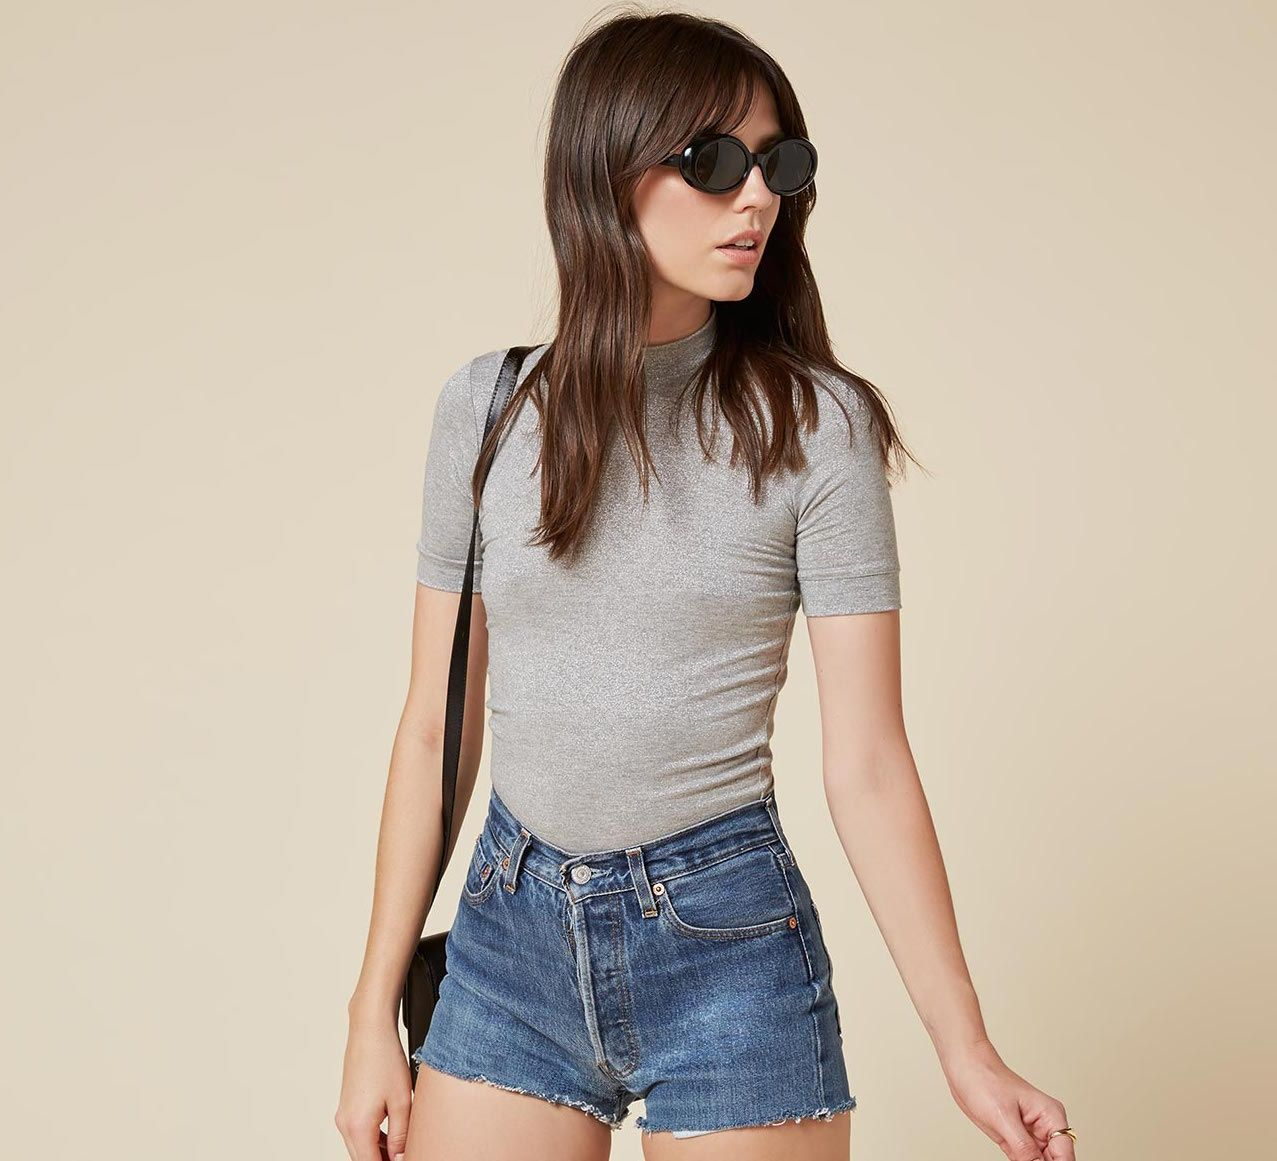 Go mod in a gray mockneck tee from Reformation. Tops